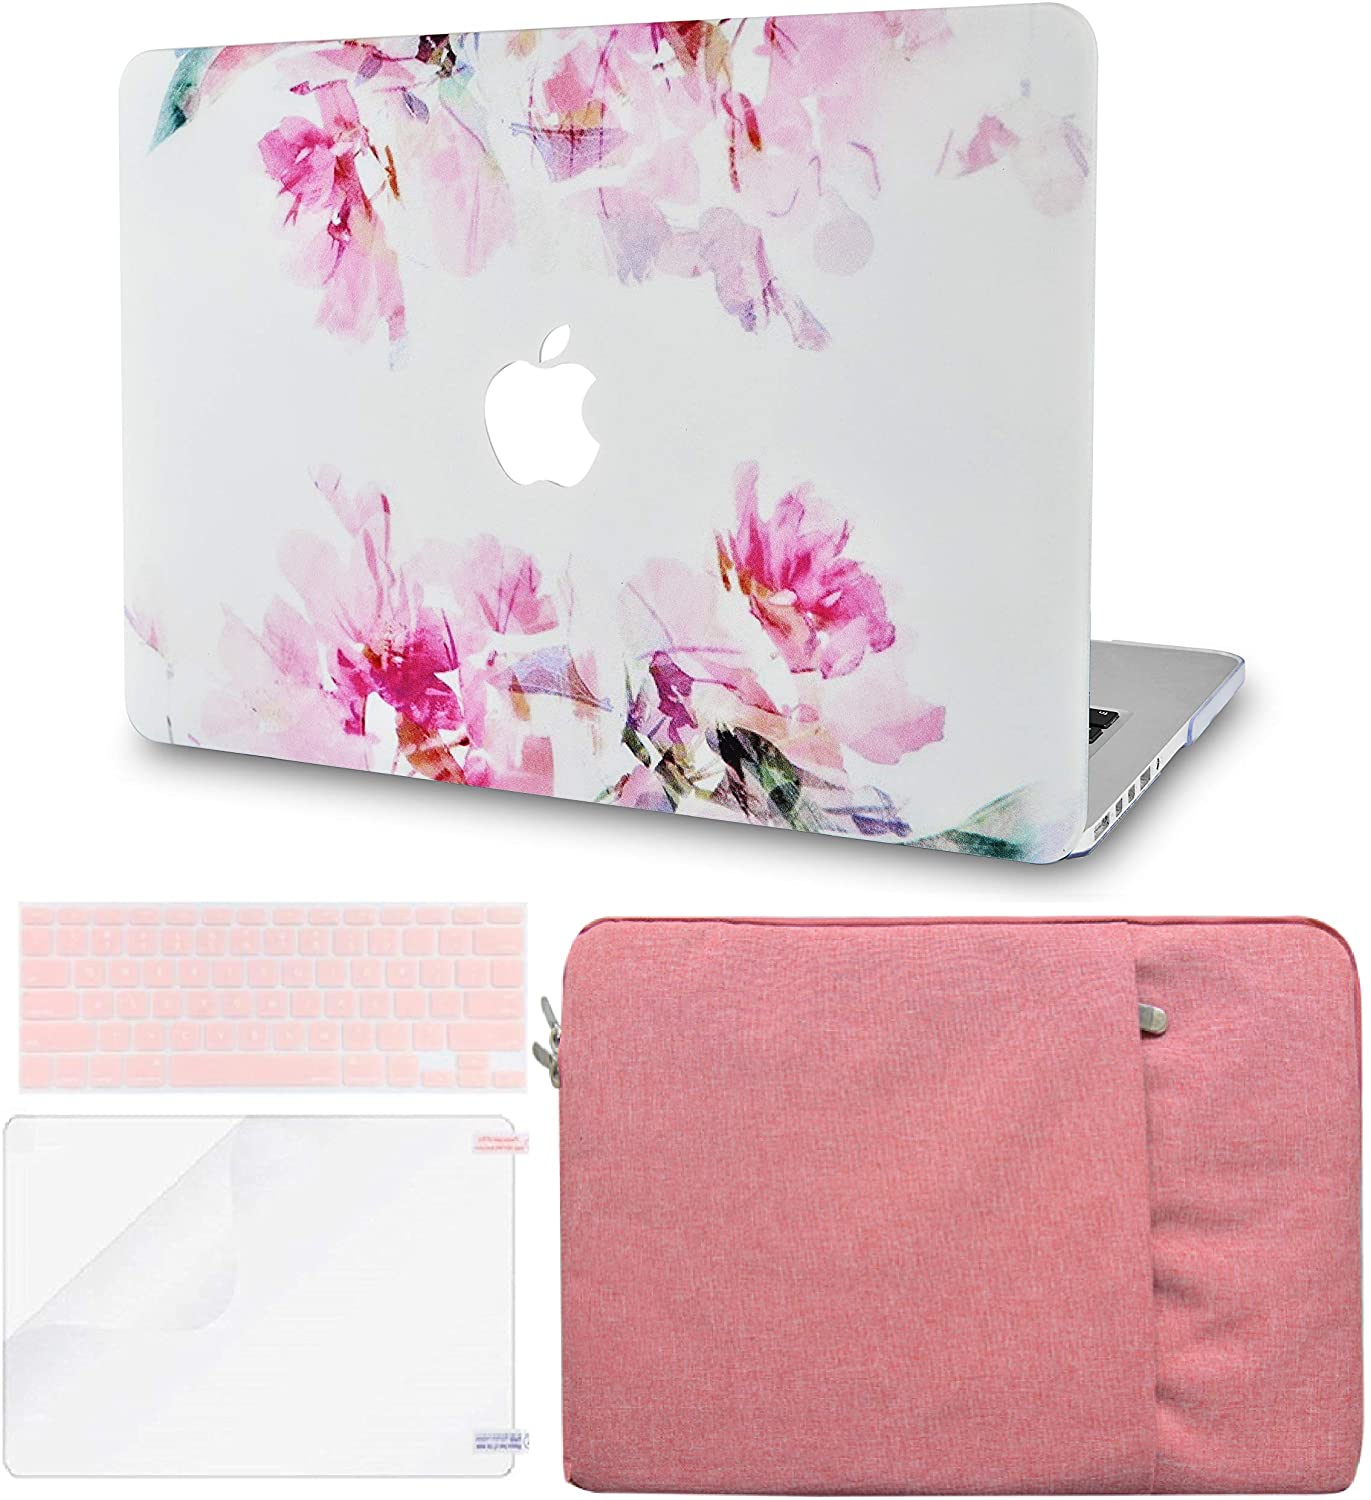 LuvCase 4 in 1 Laptop Case for Old MacBook Pro 13